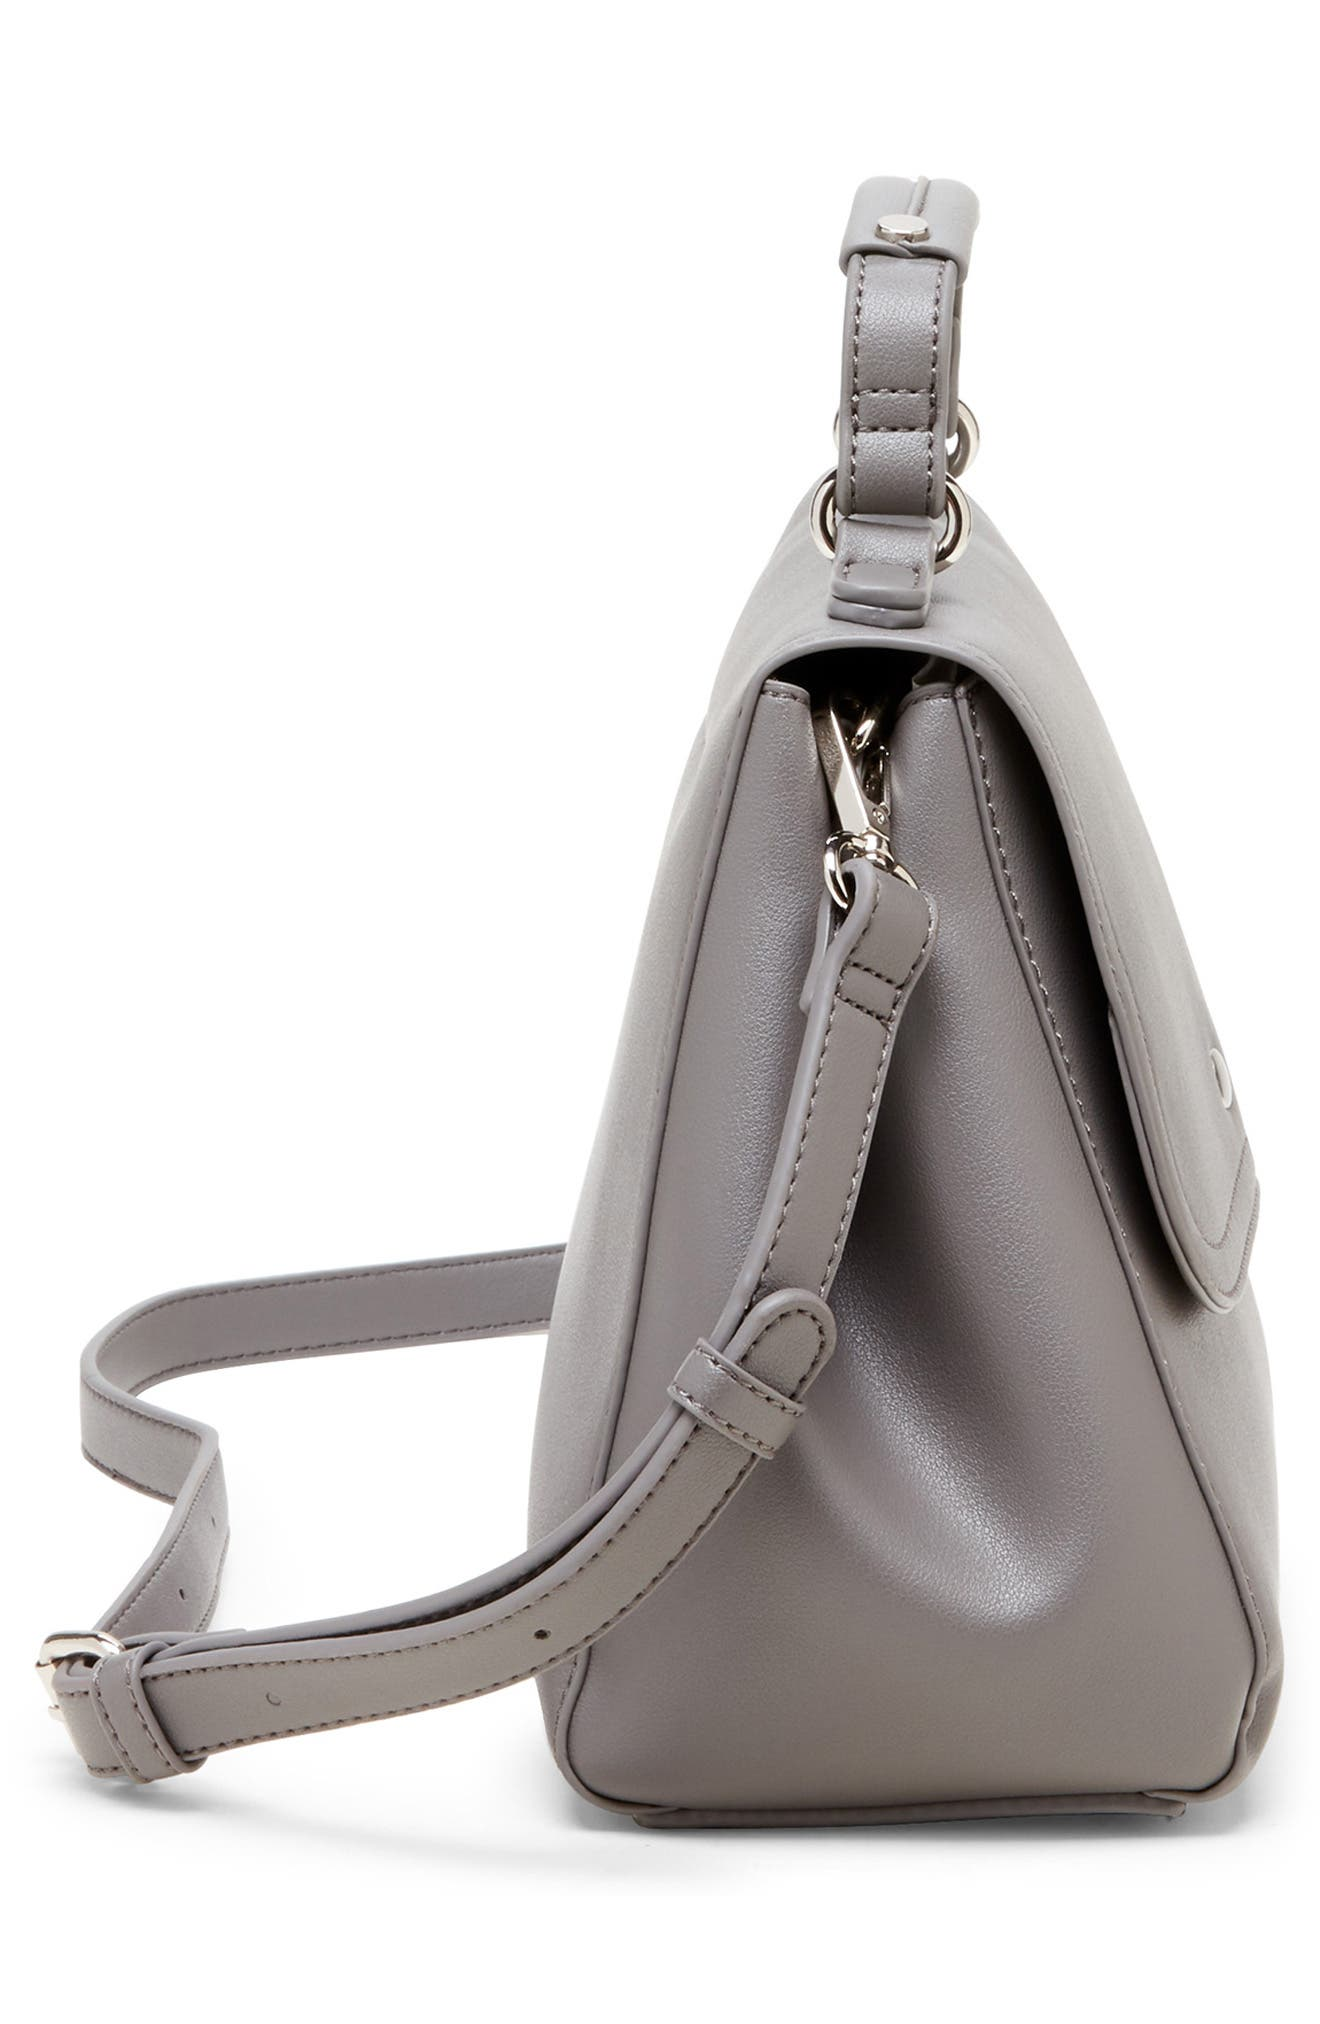 SOLE SOCIETY, Hingi Faux Leather Satchel, Alternate thumbnail 4, color, GREY